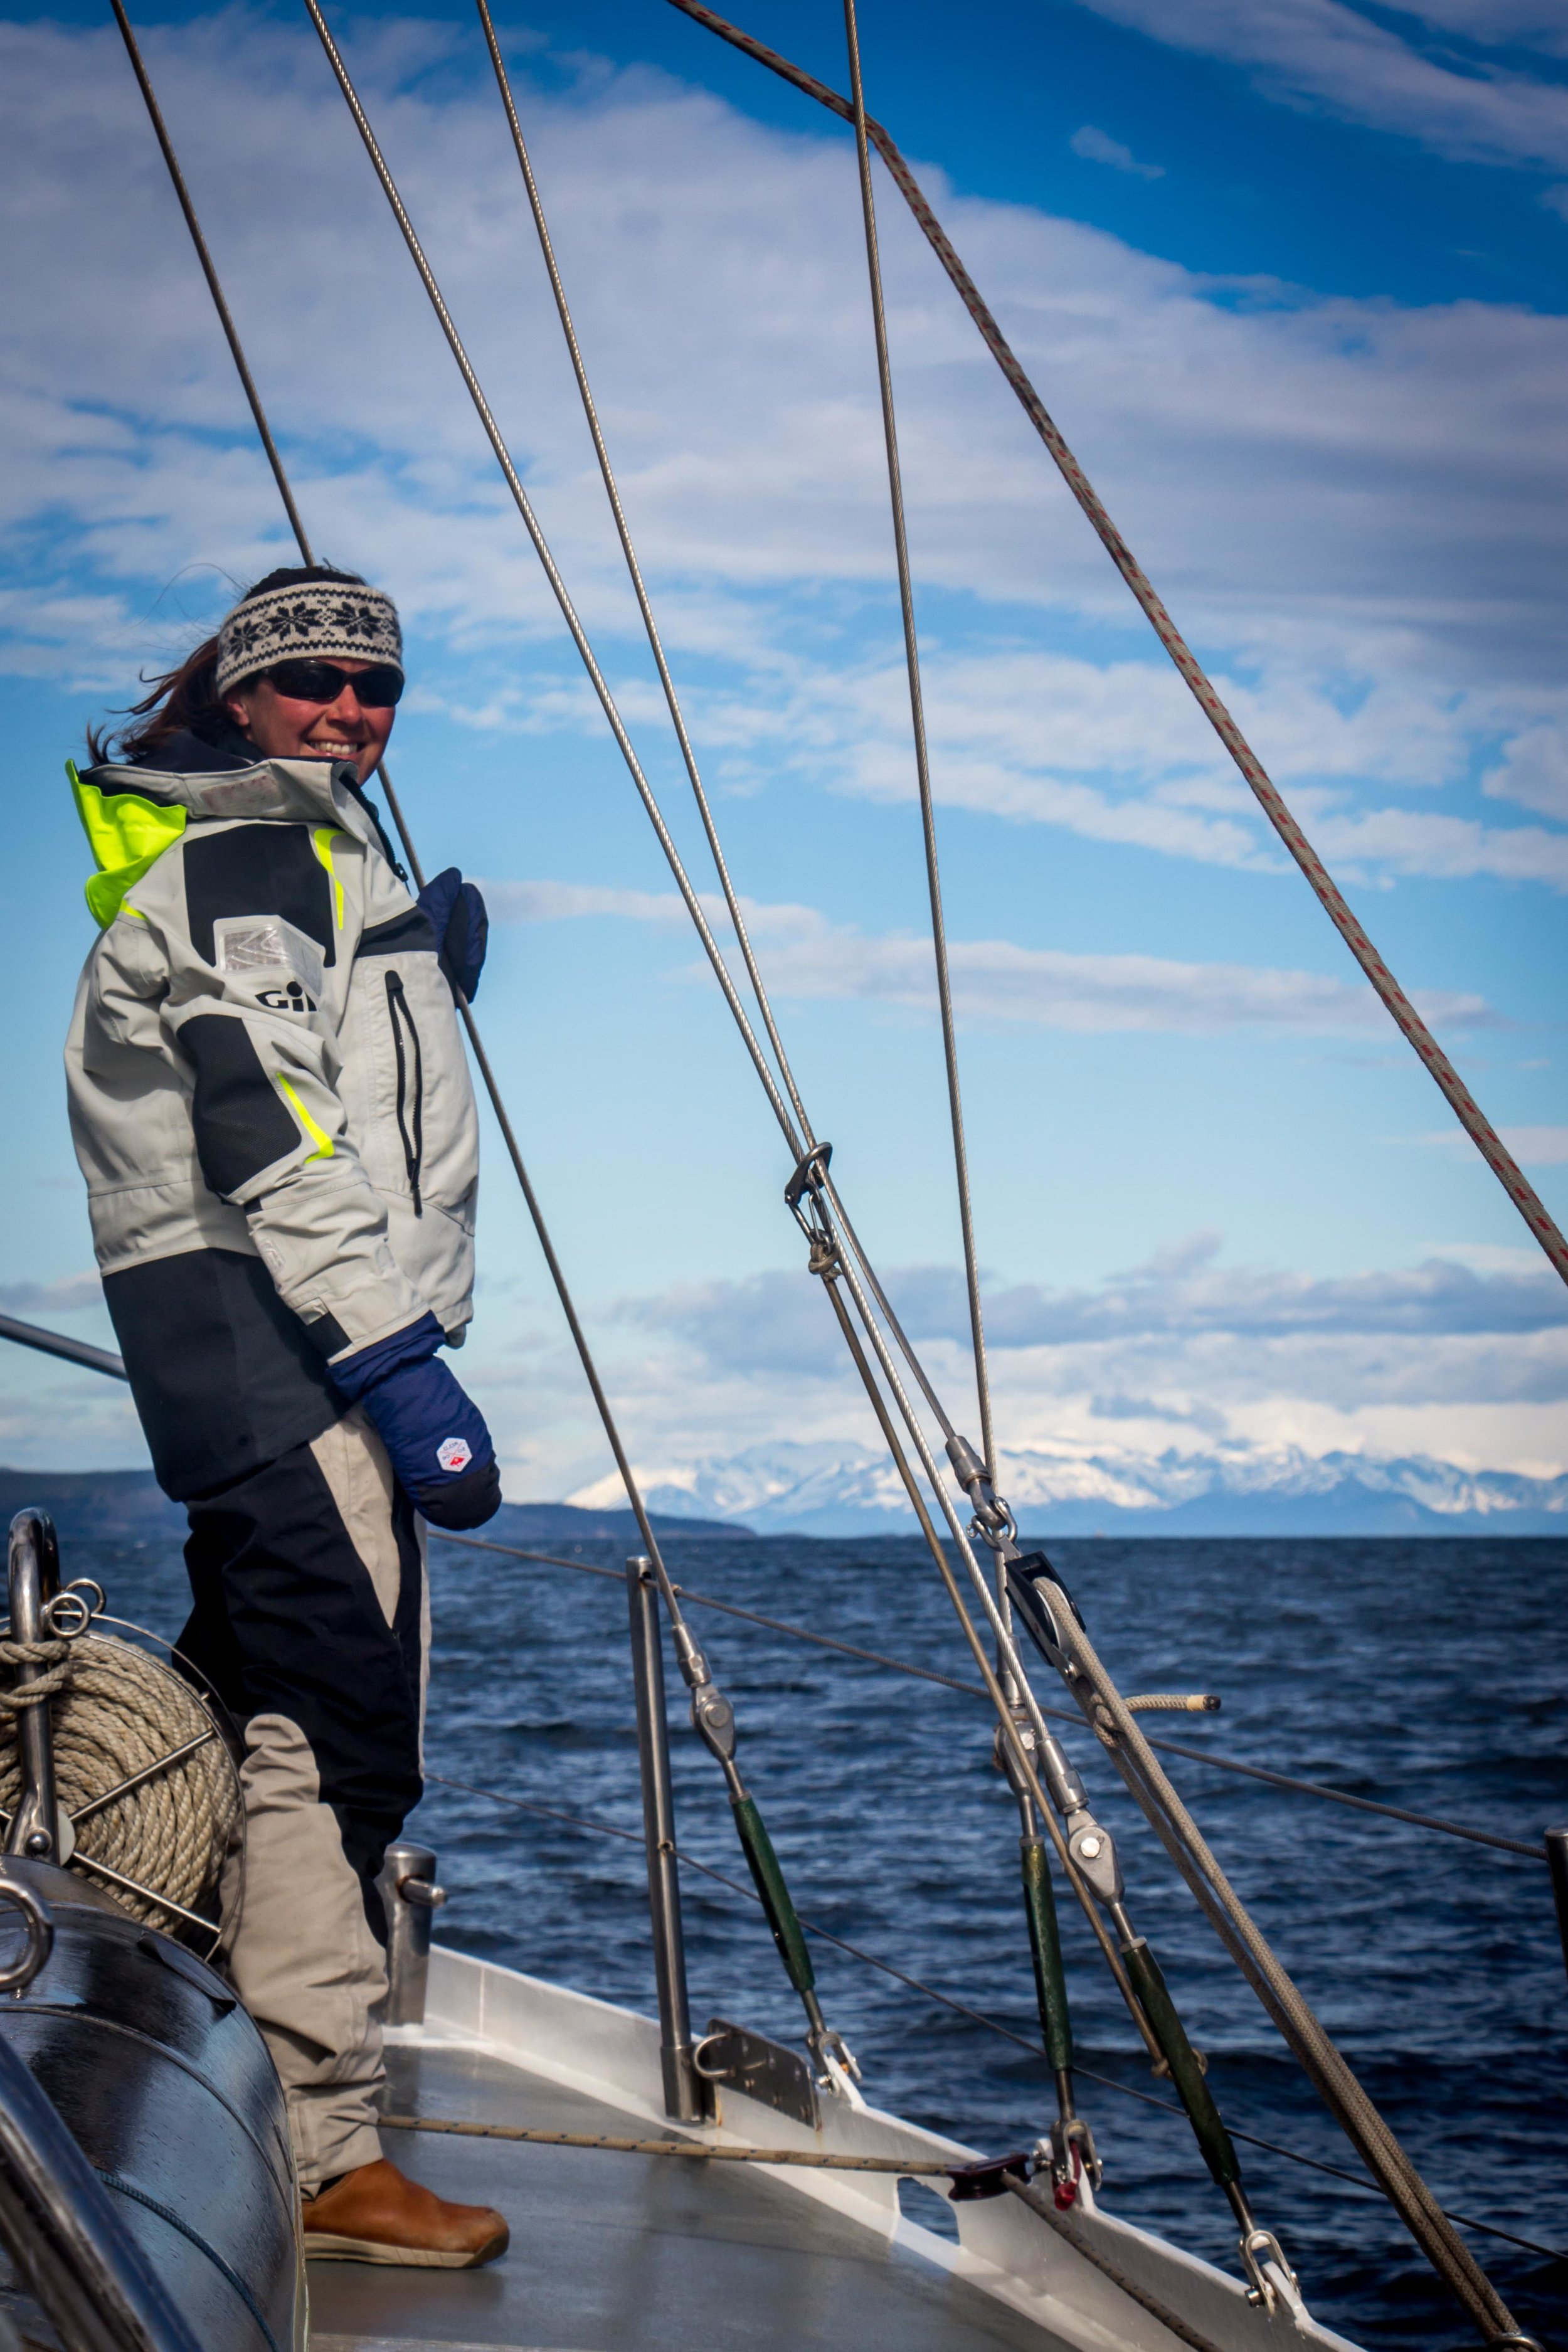 Katherine Knight adventure sailing